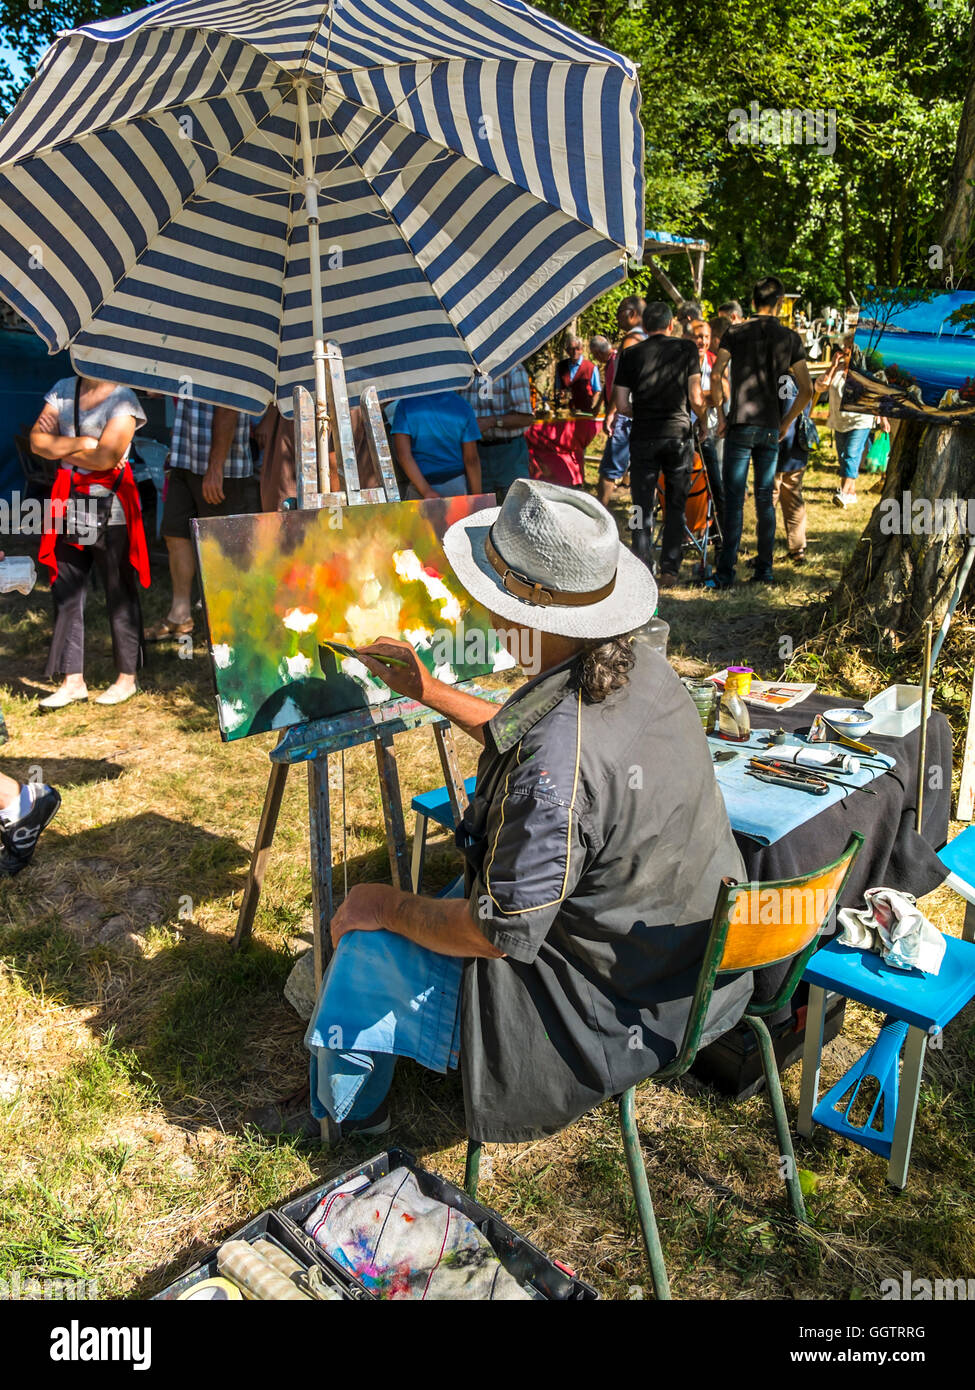 Artist painting abstract subject at art and craft fair - France. - Stock Image